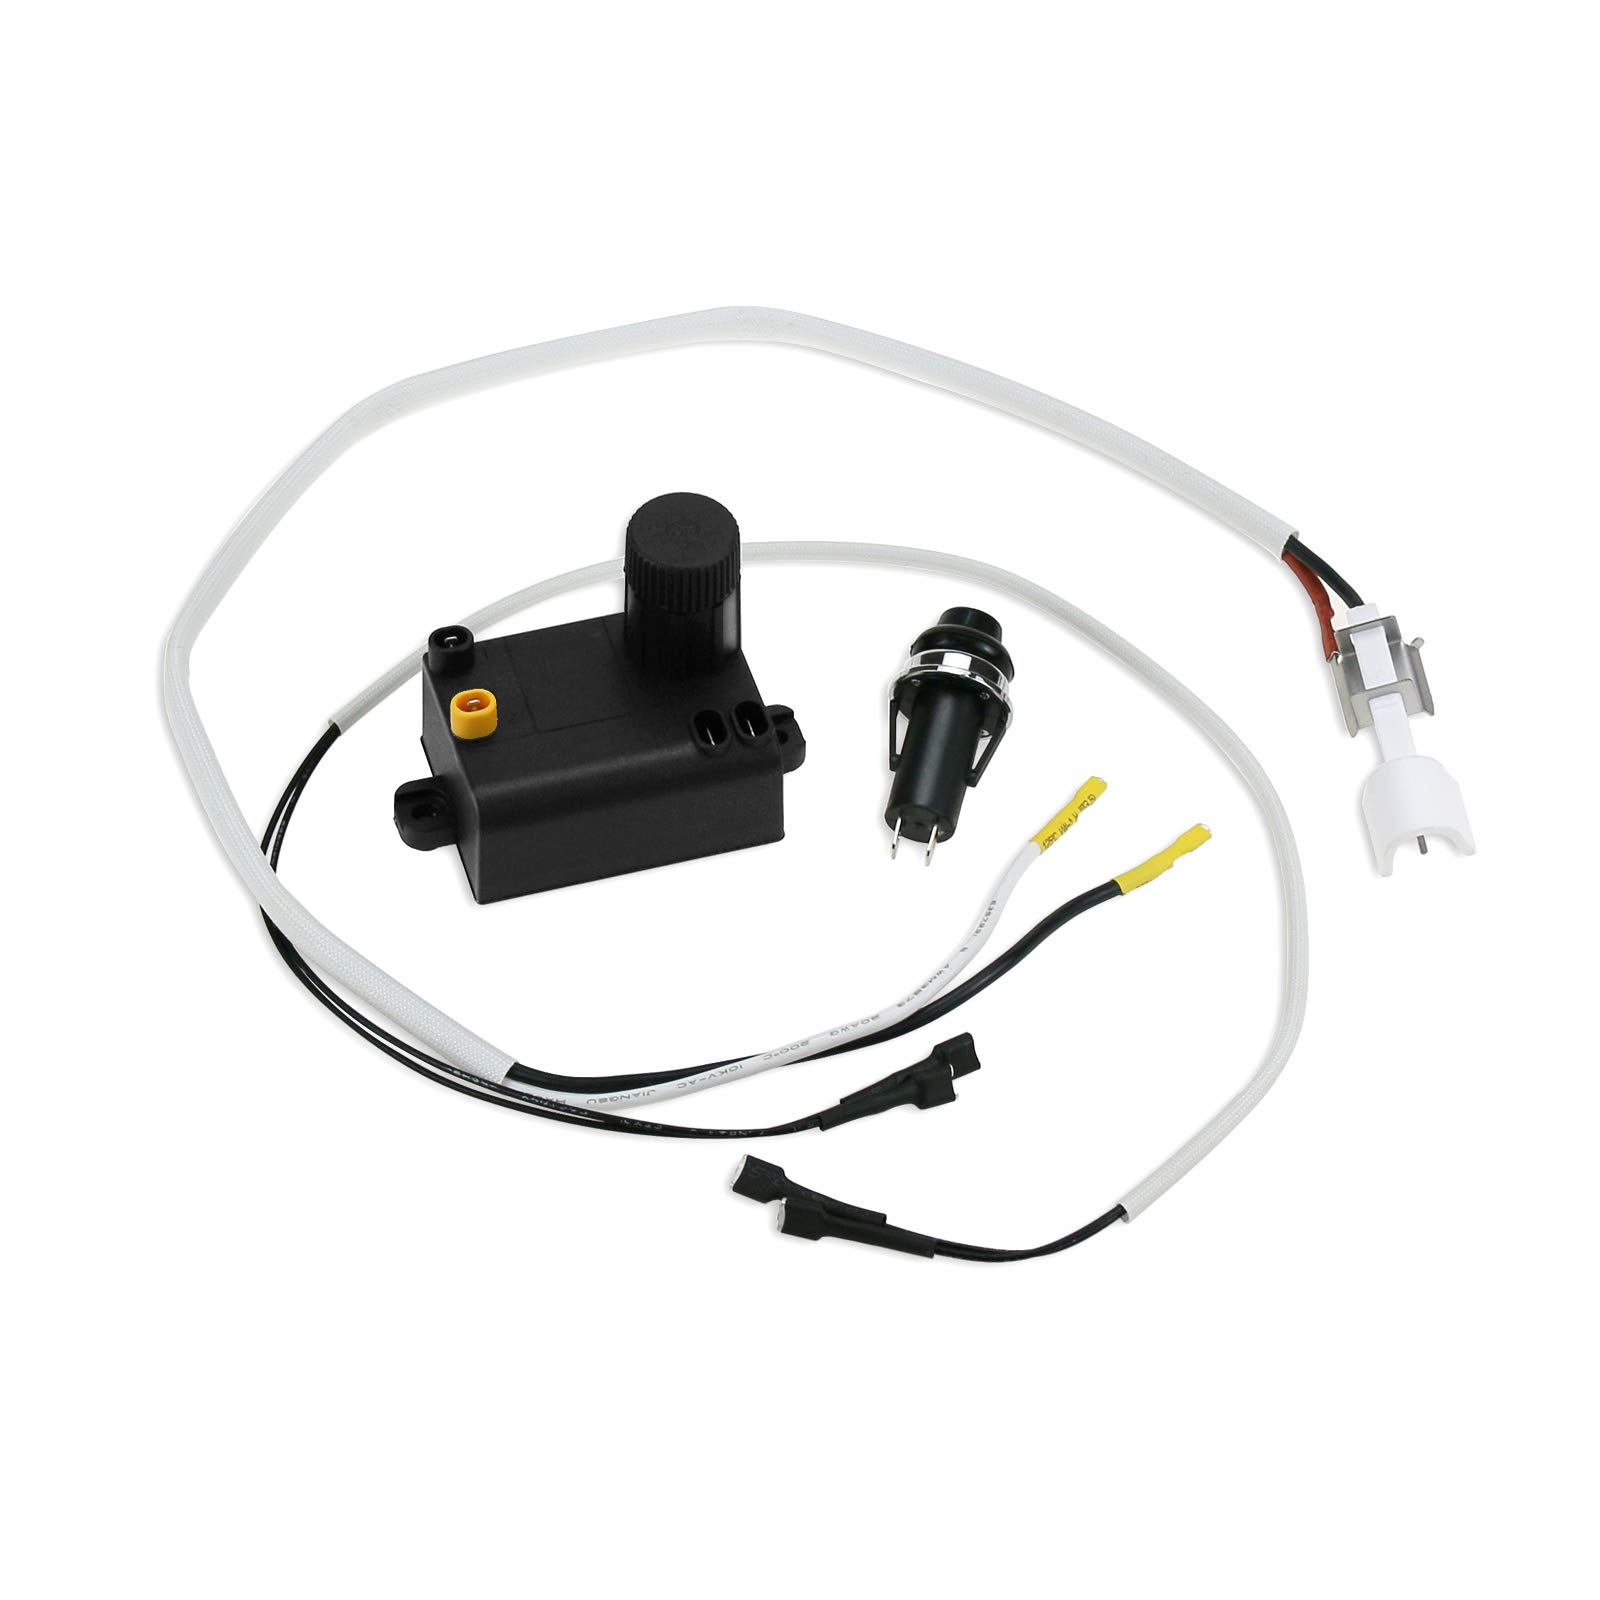 Hisencn Electronic Igniter Kit Replacement for Weber 7642, 69850, Spirit 200 Series, Spirit E-210, E-220, S-210, E-310, SP-310 Gas Grills with Up Front Controls, Electronic Igniter Wire by Hisencn